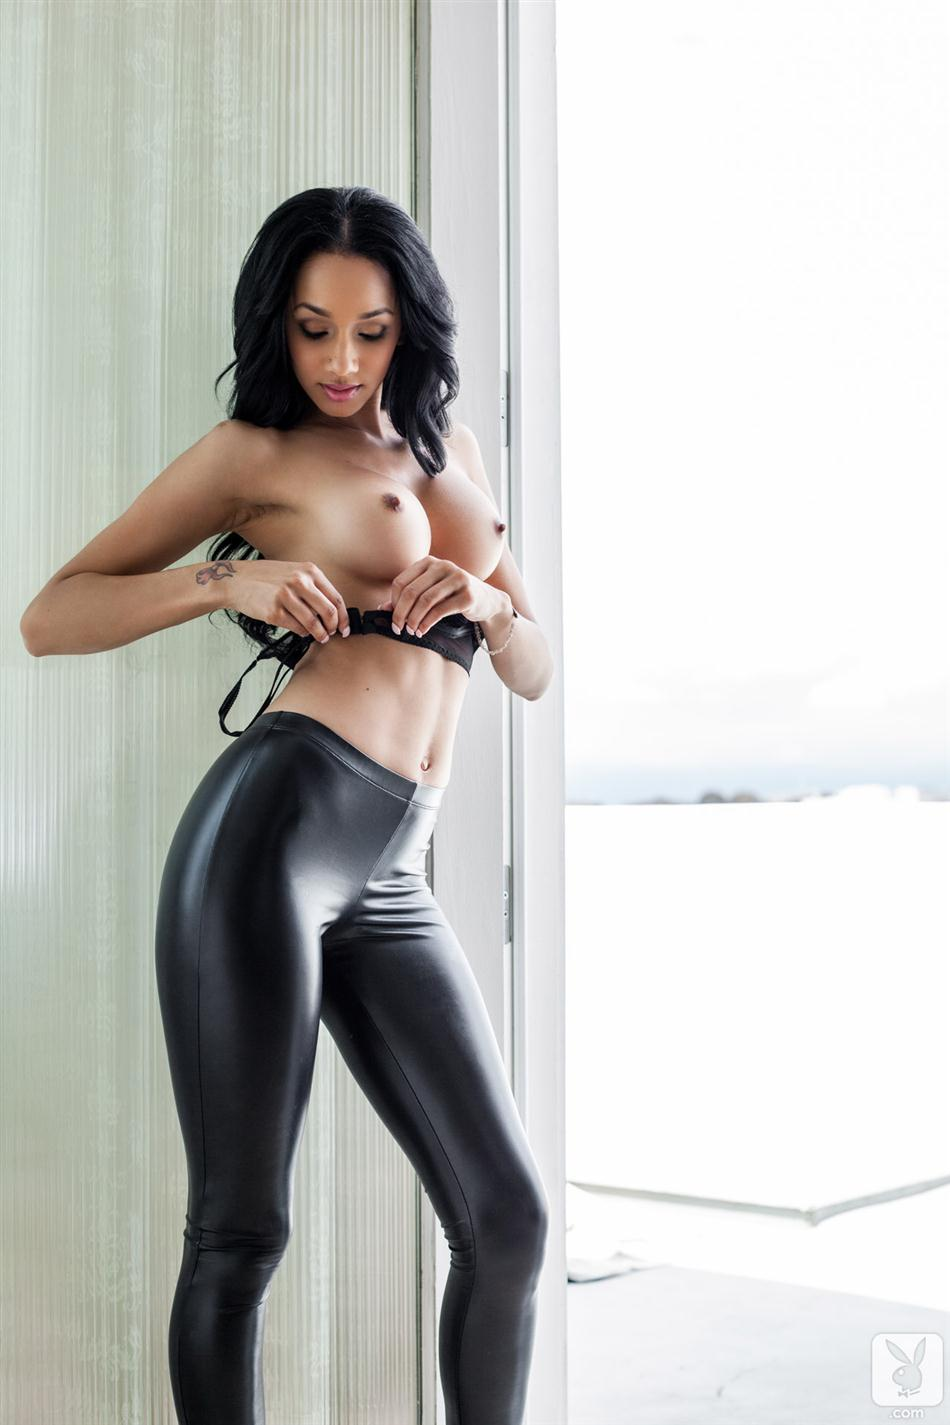 Nude women in leather pants think, that